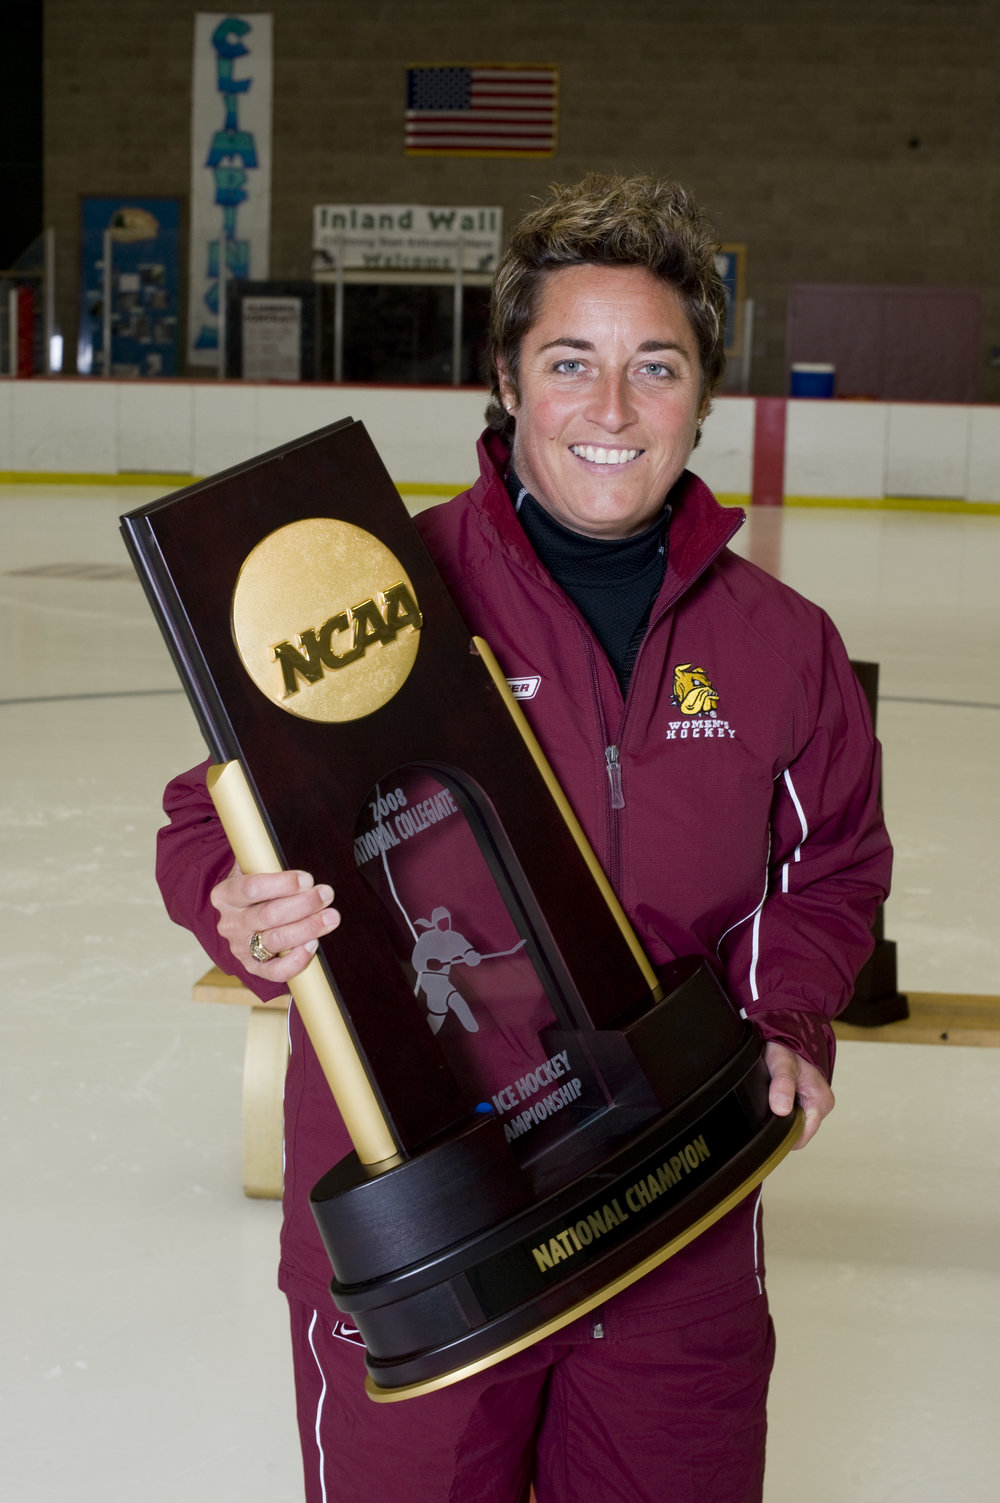 Former UMD women's hockey coach, Shannon Miller holding a National Championship trophy after UMD won in 2008. Photo courtesy UMD Athletics